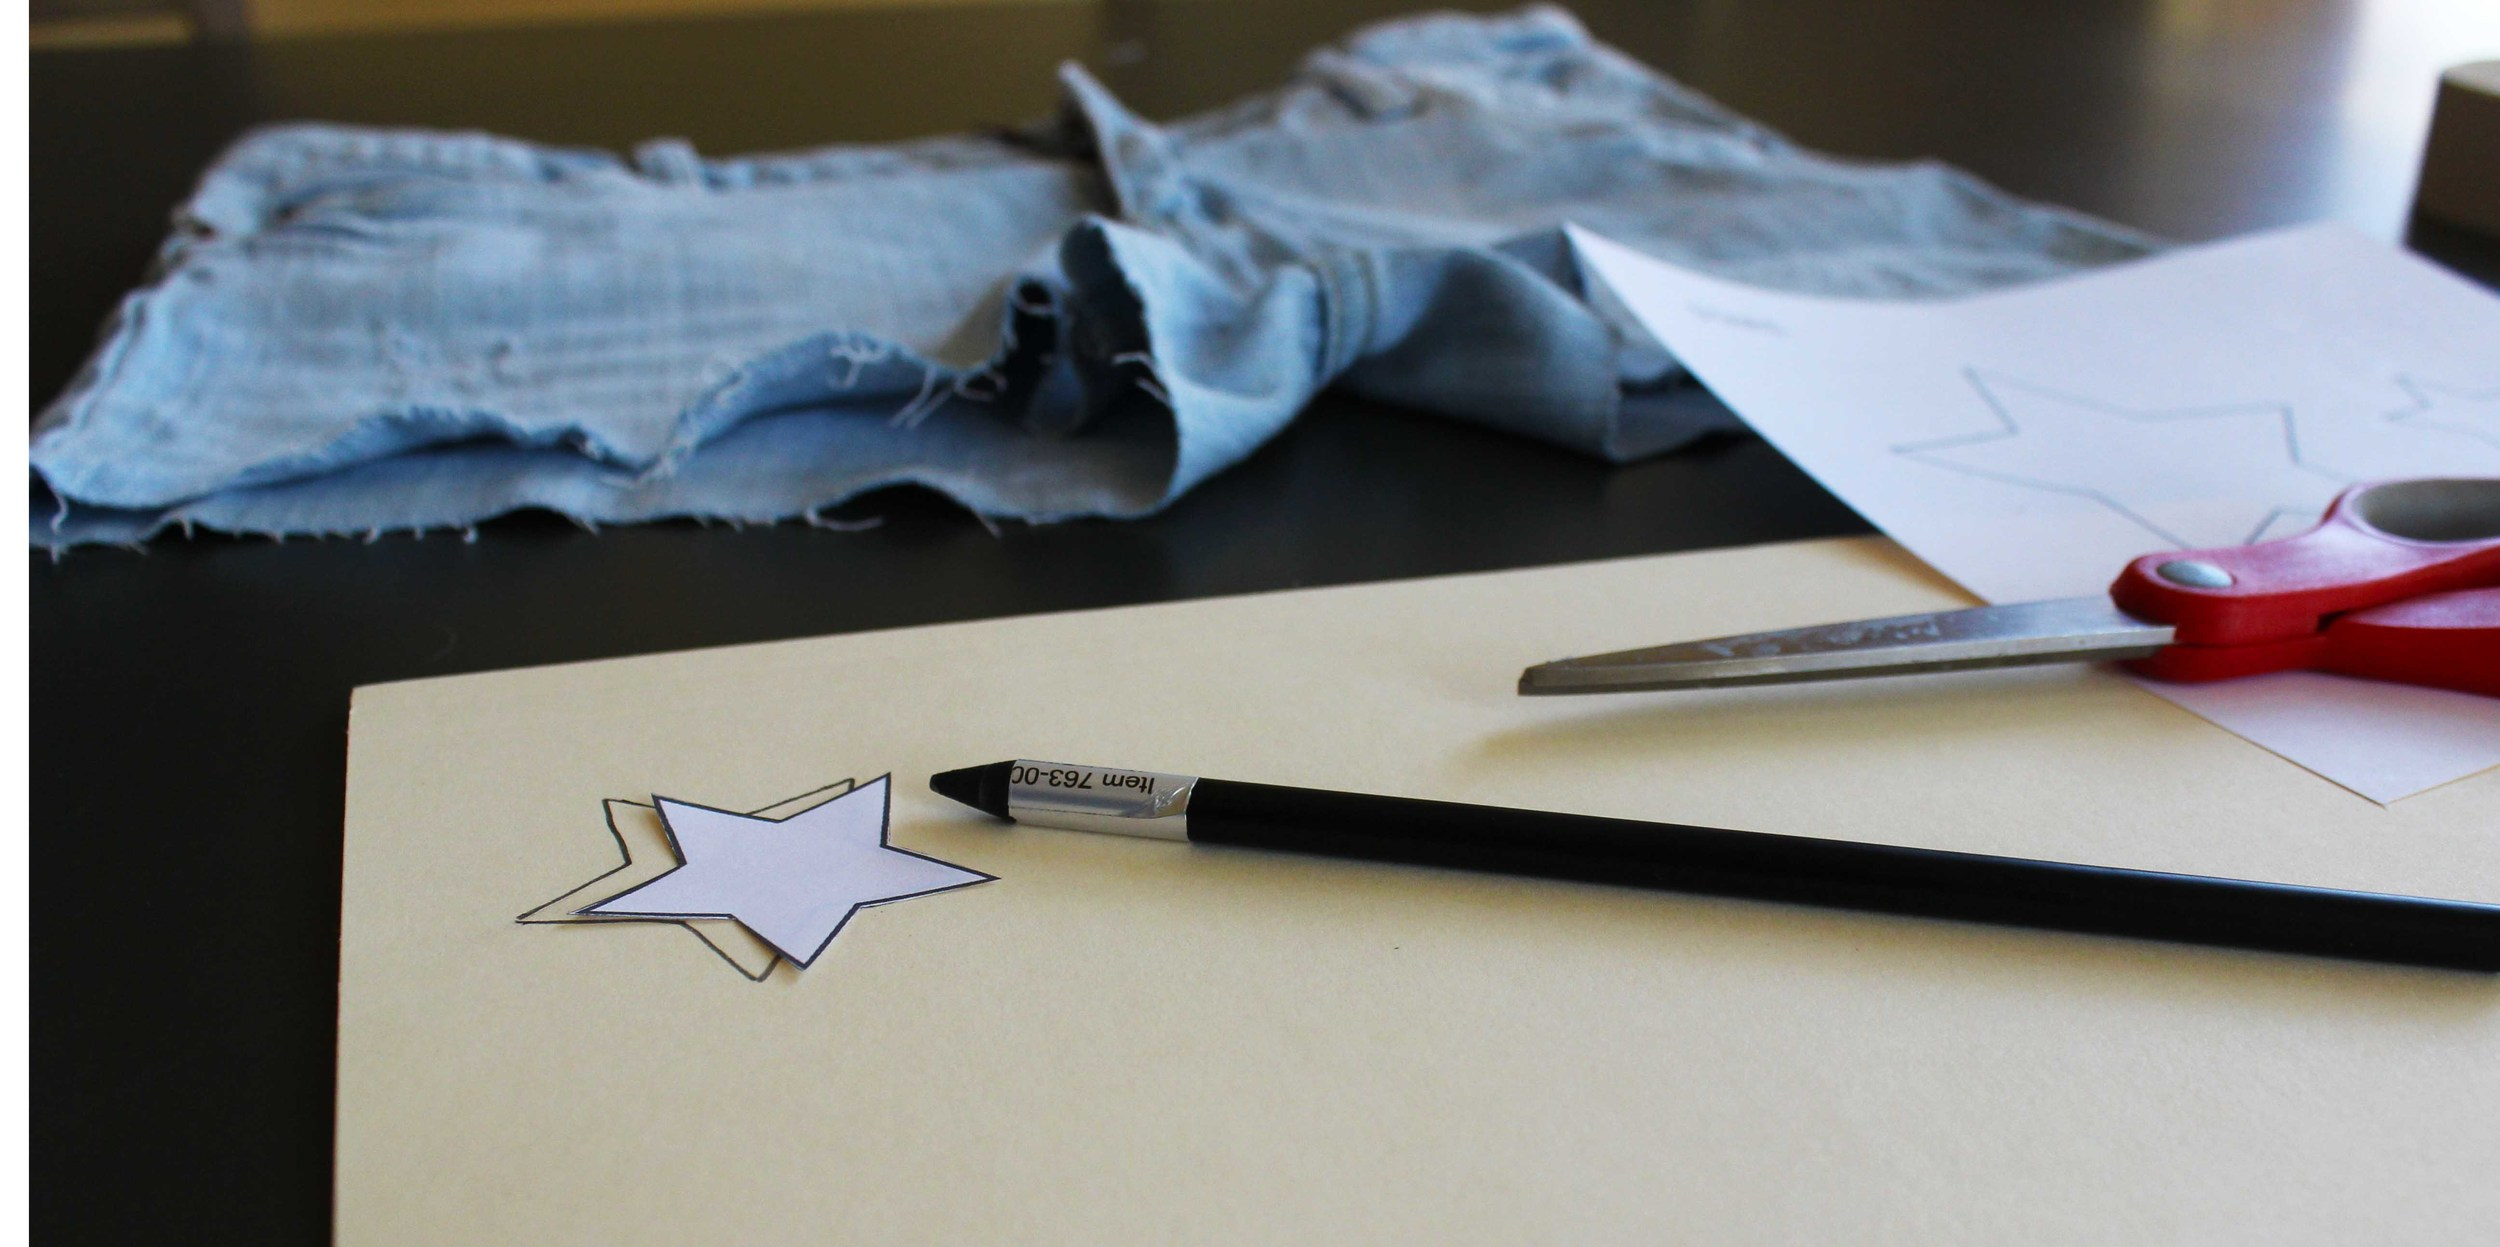 Stencil your star & cut your old pants to transform them into HOT Shorts.